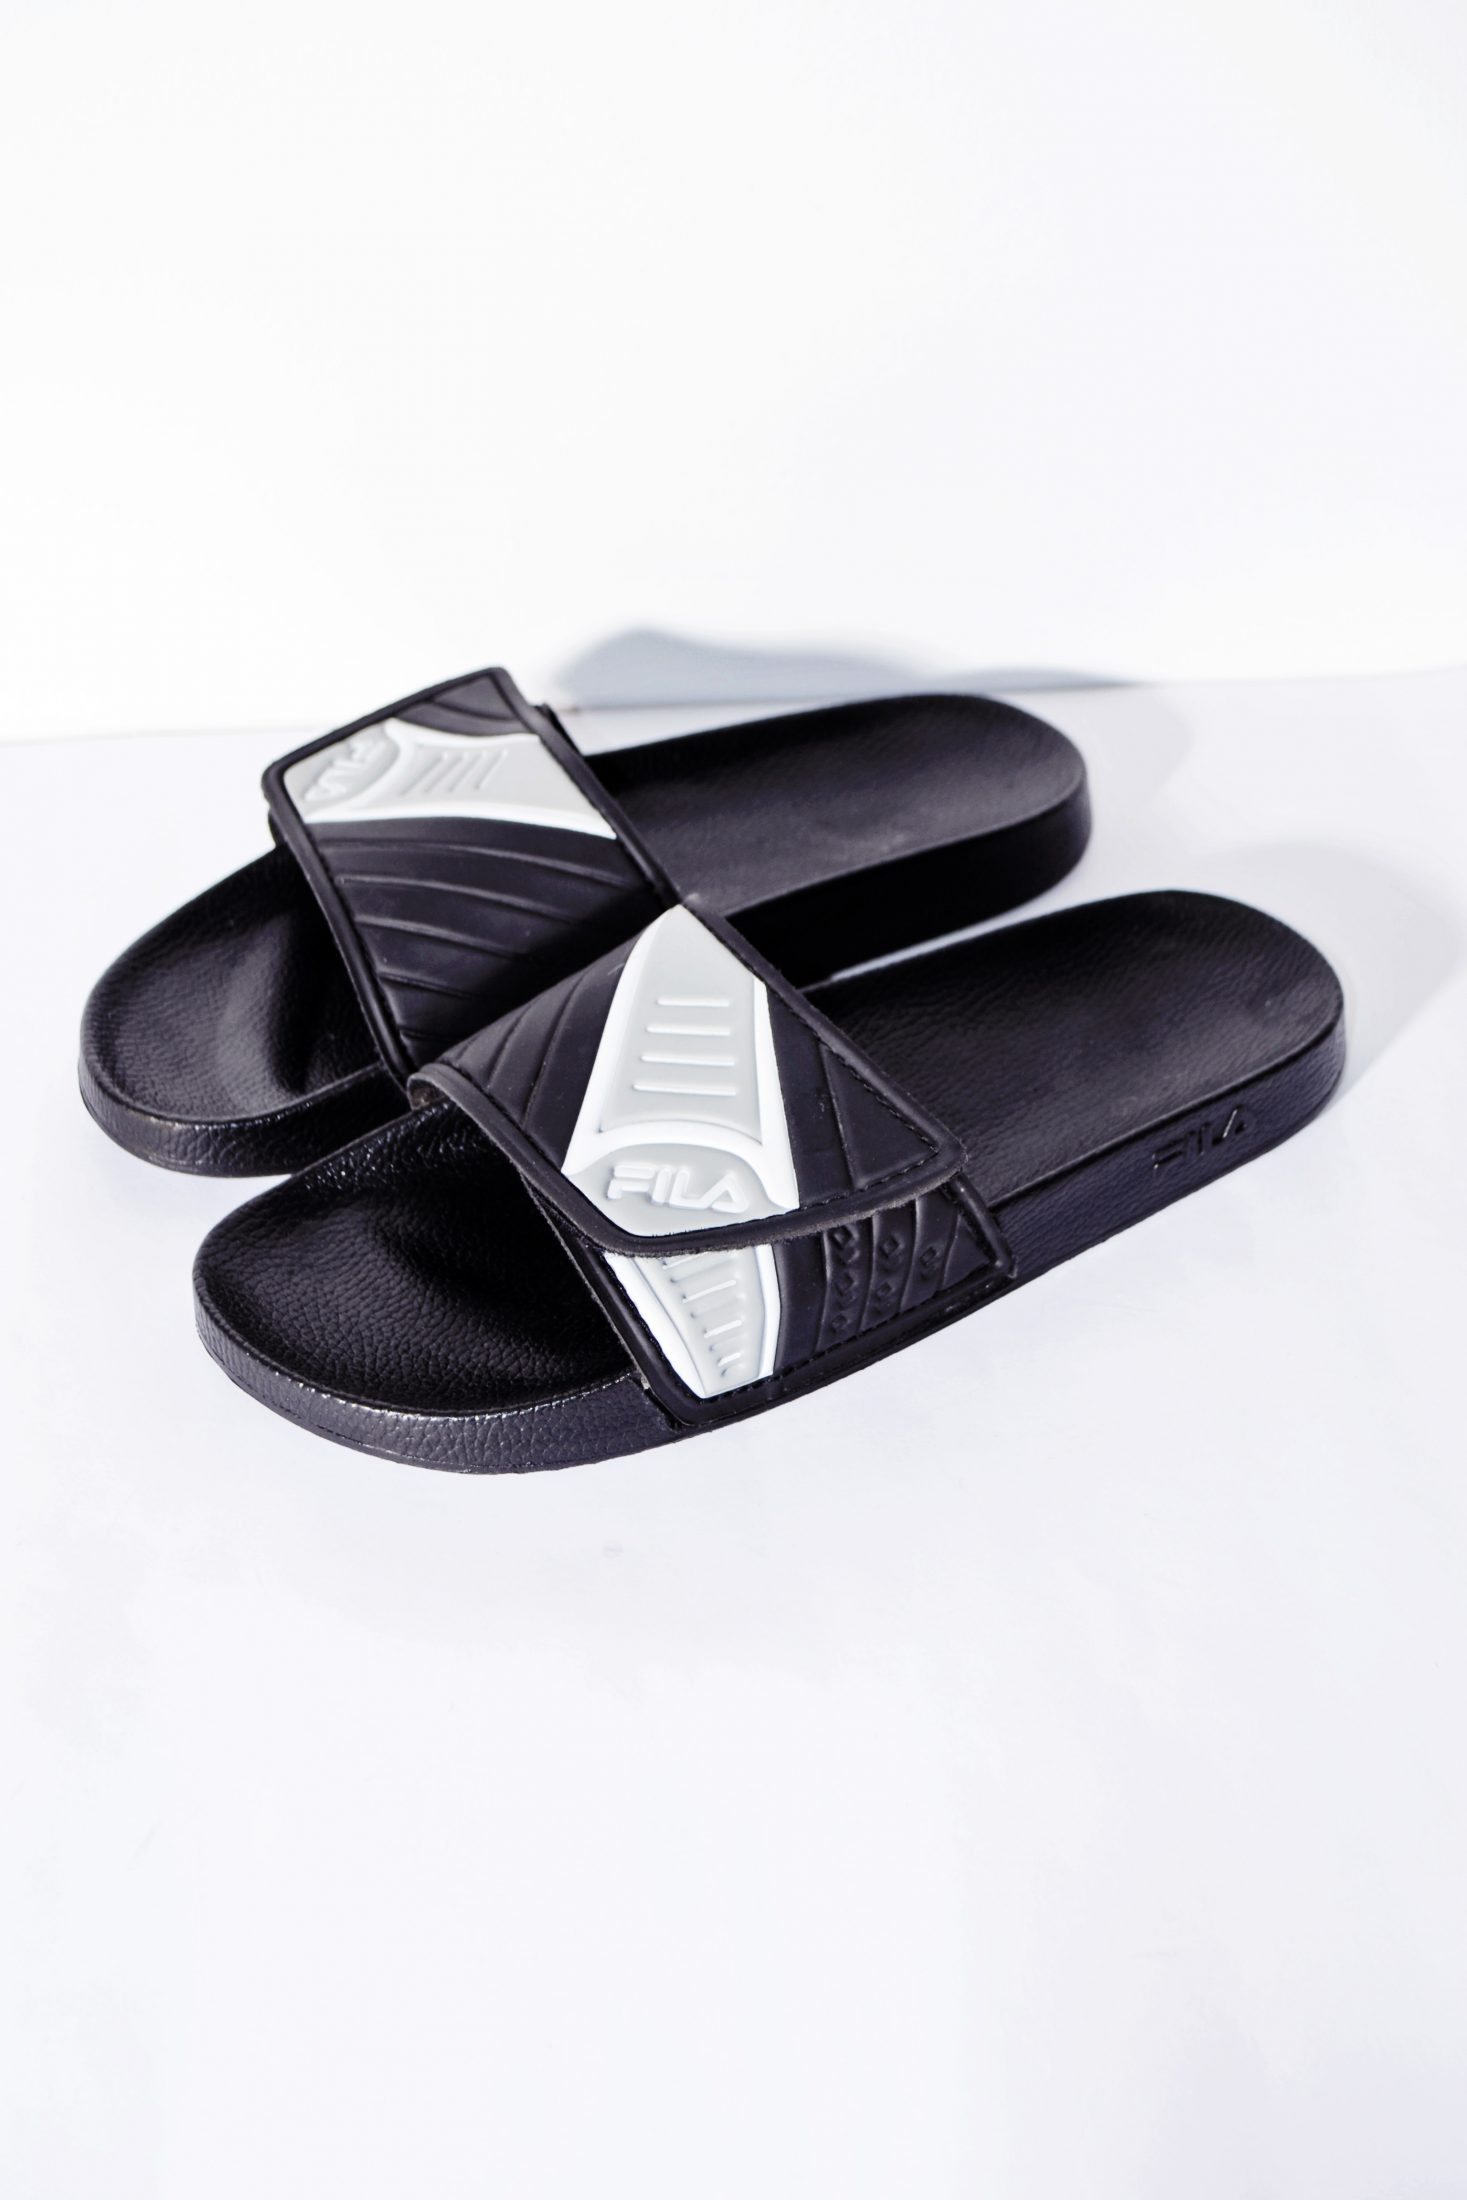 FILA sandals classic slides sliders men's in black and gray color